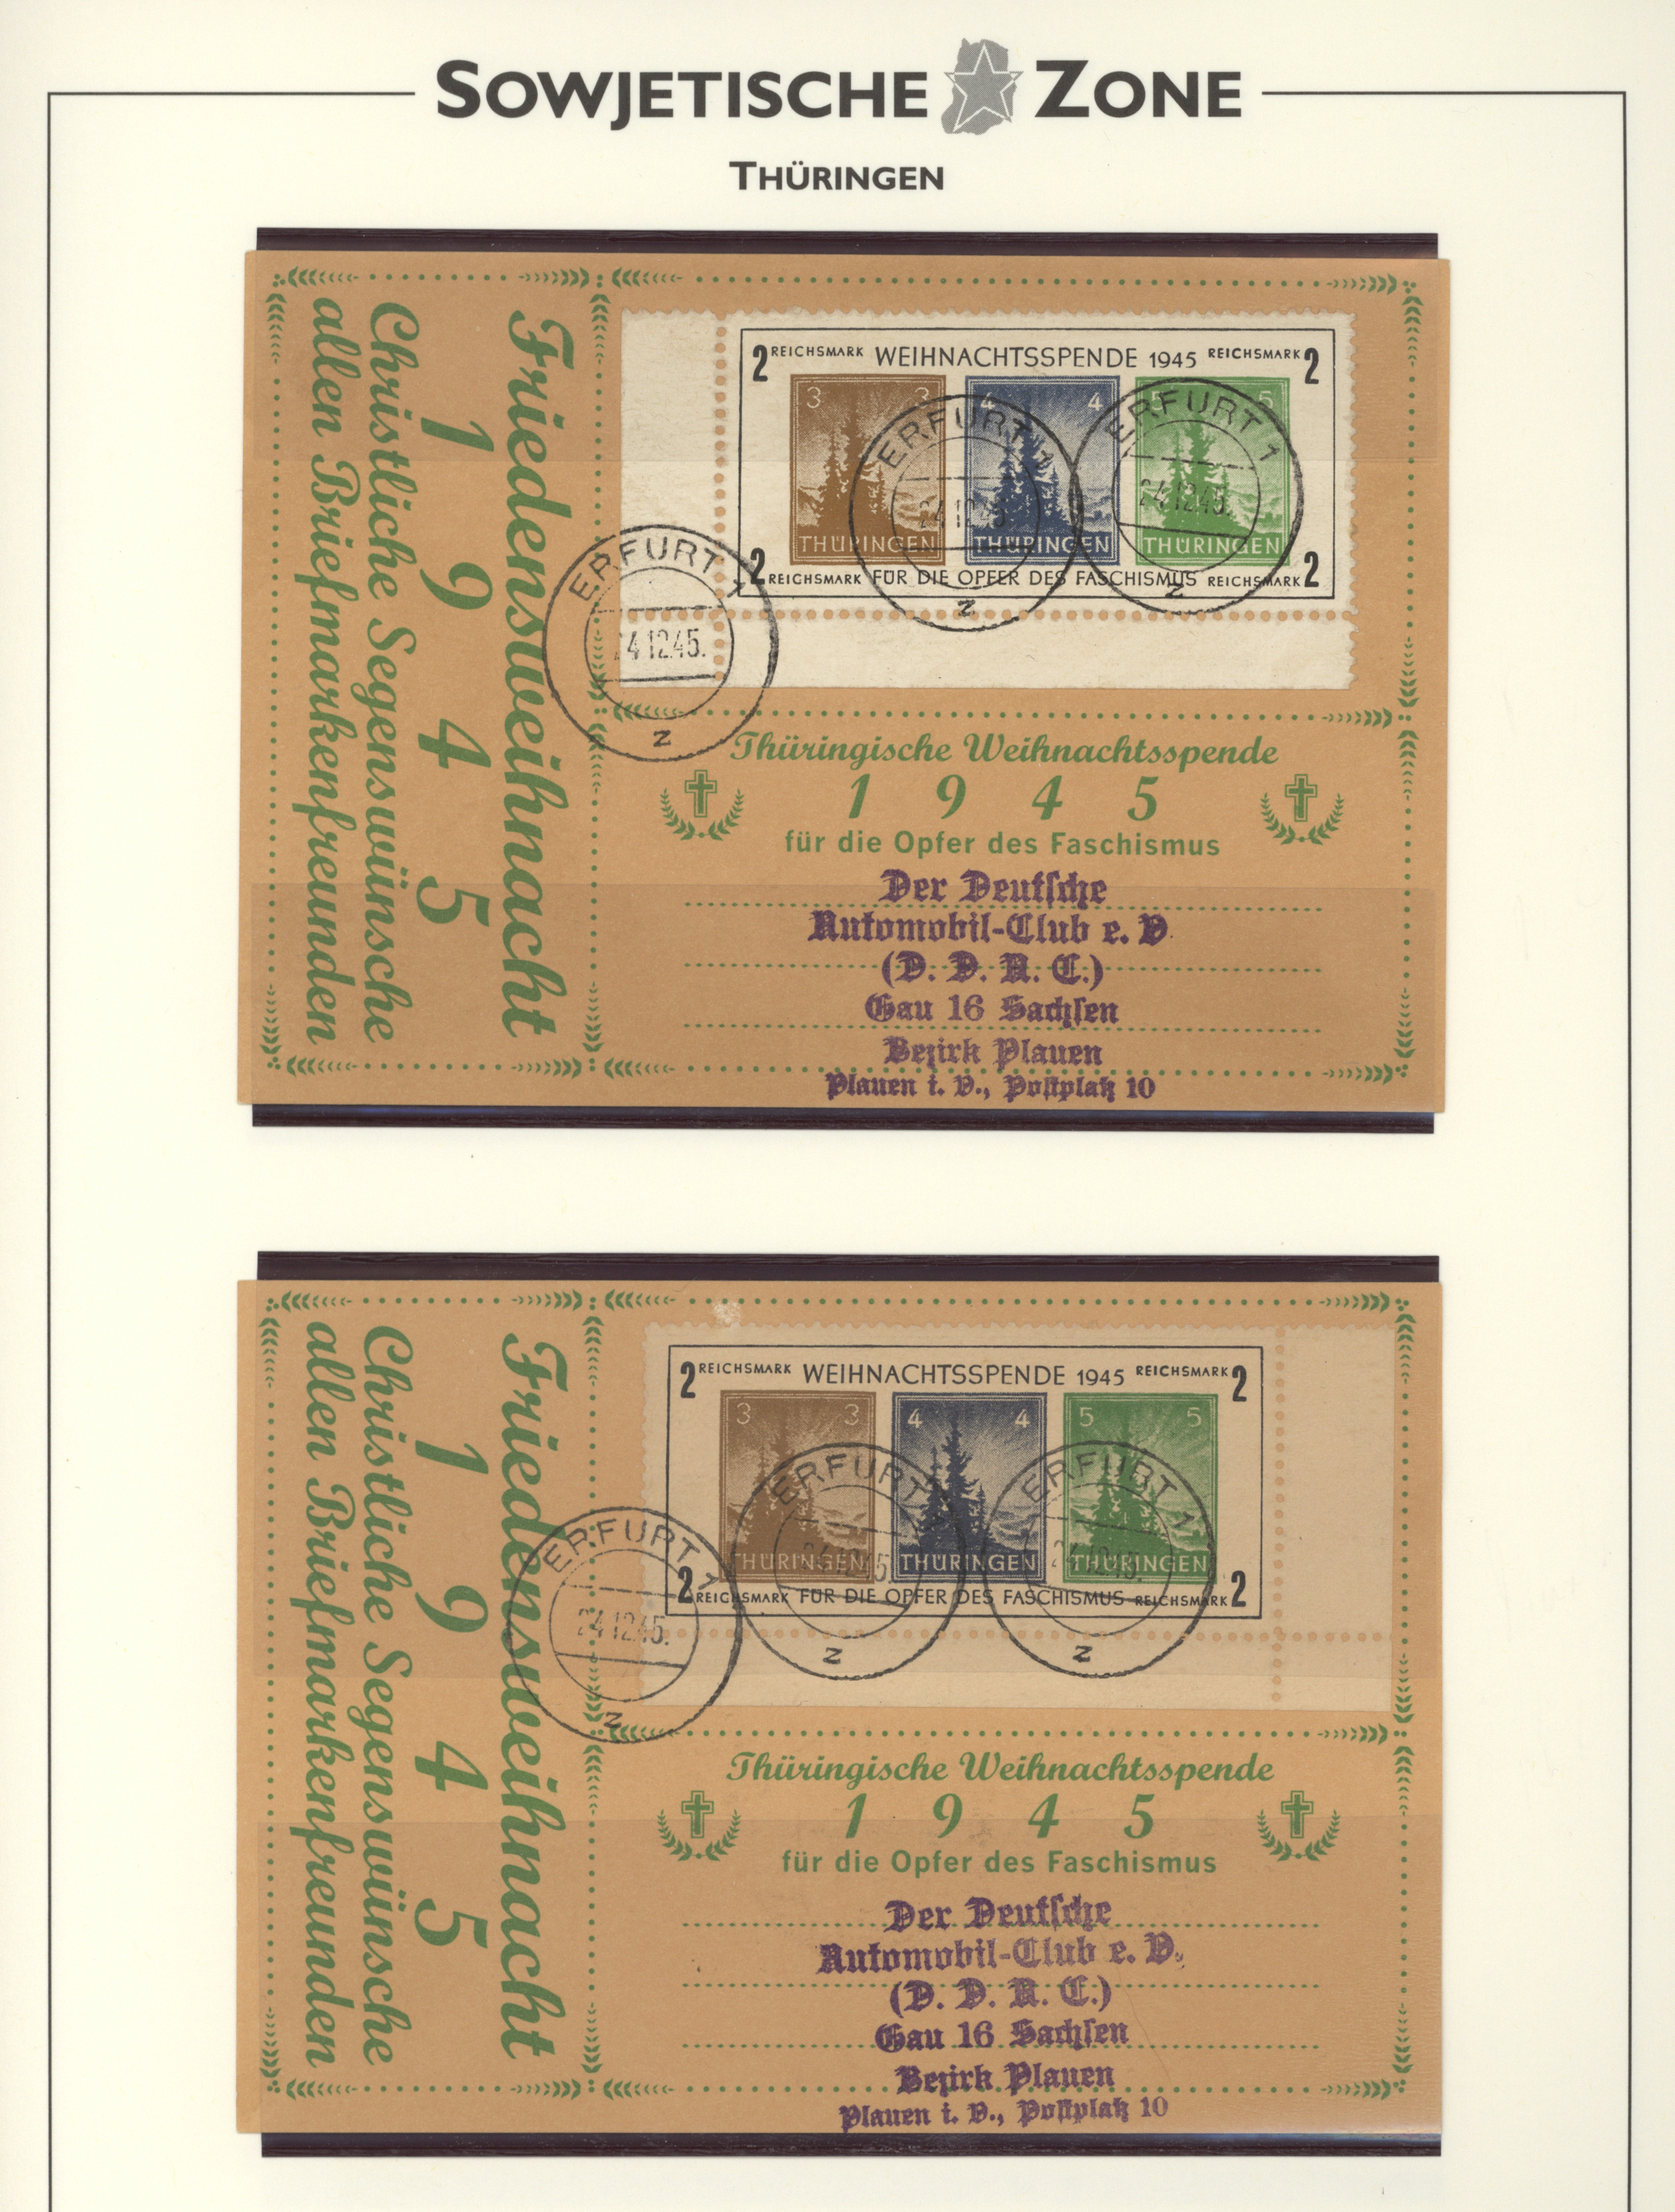 Lot 35261A - sowjetische zone  -  Auktionshaus Christoph Gärtner GmbH & Co. KG Sale #44 Collections Germany